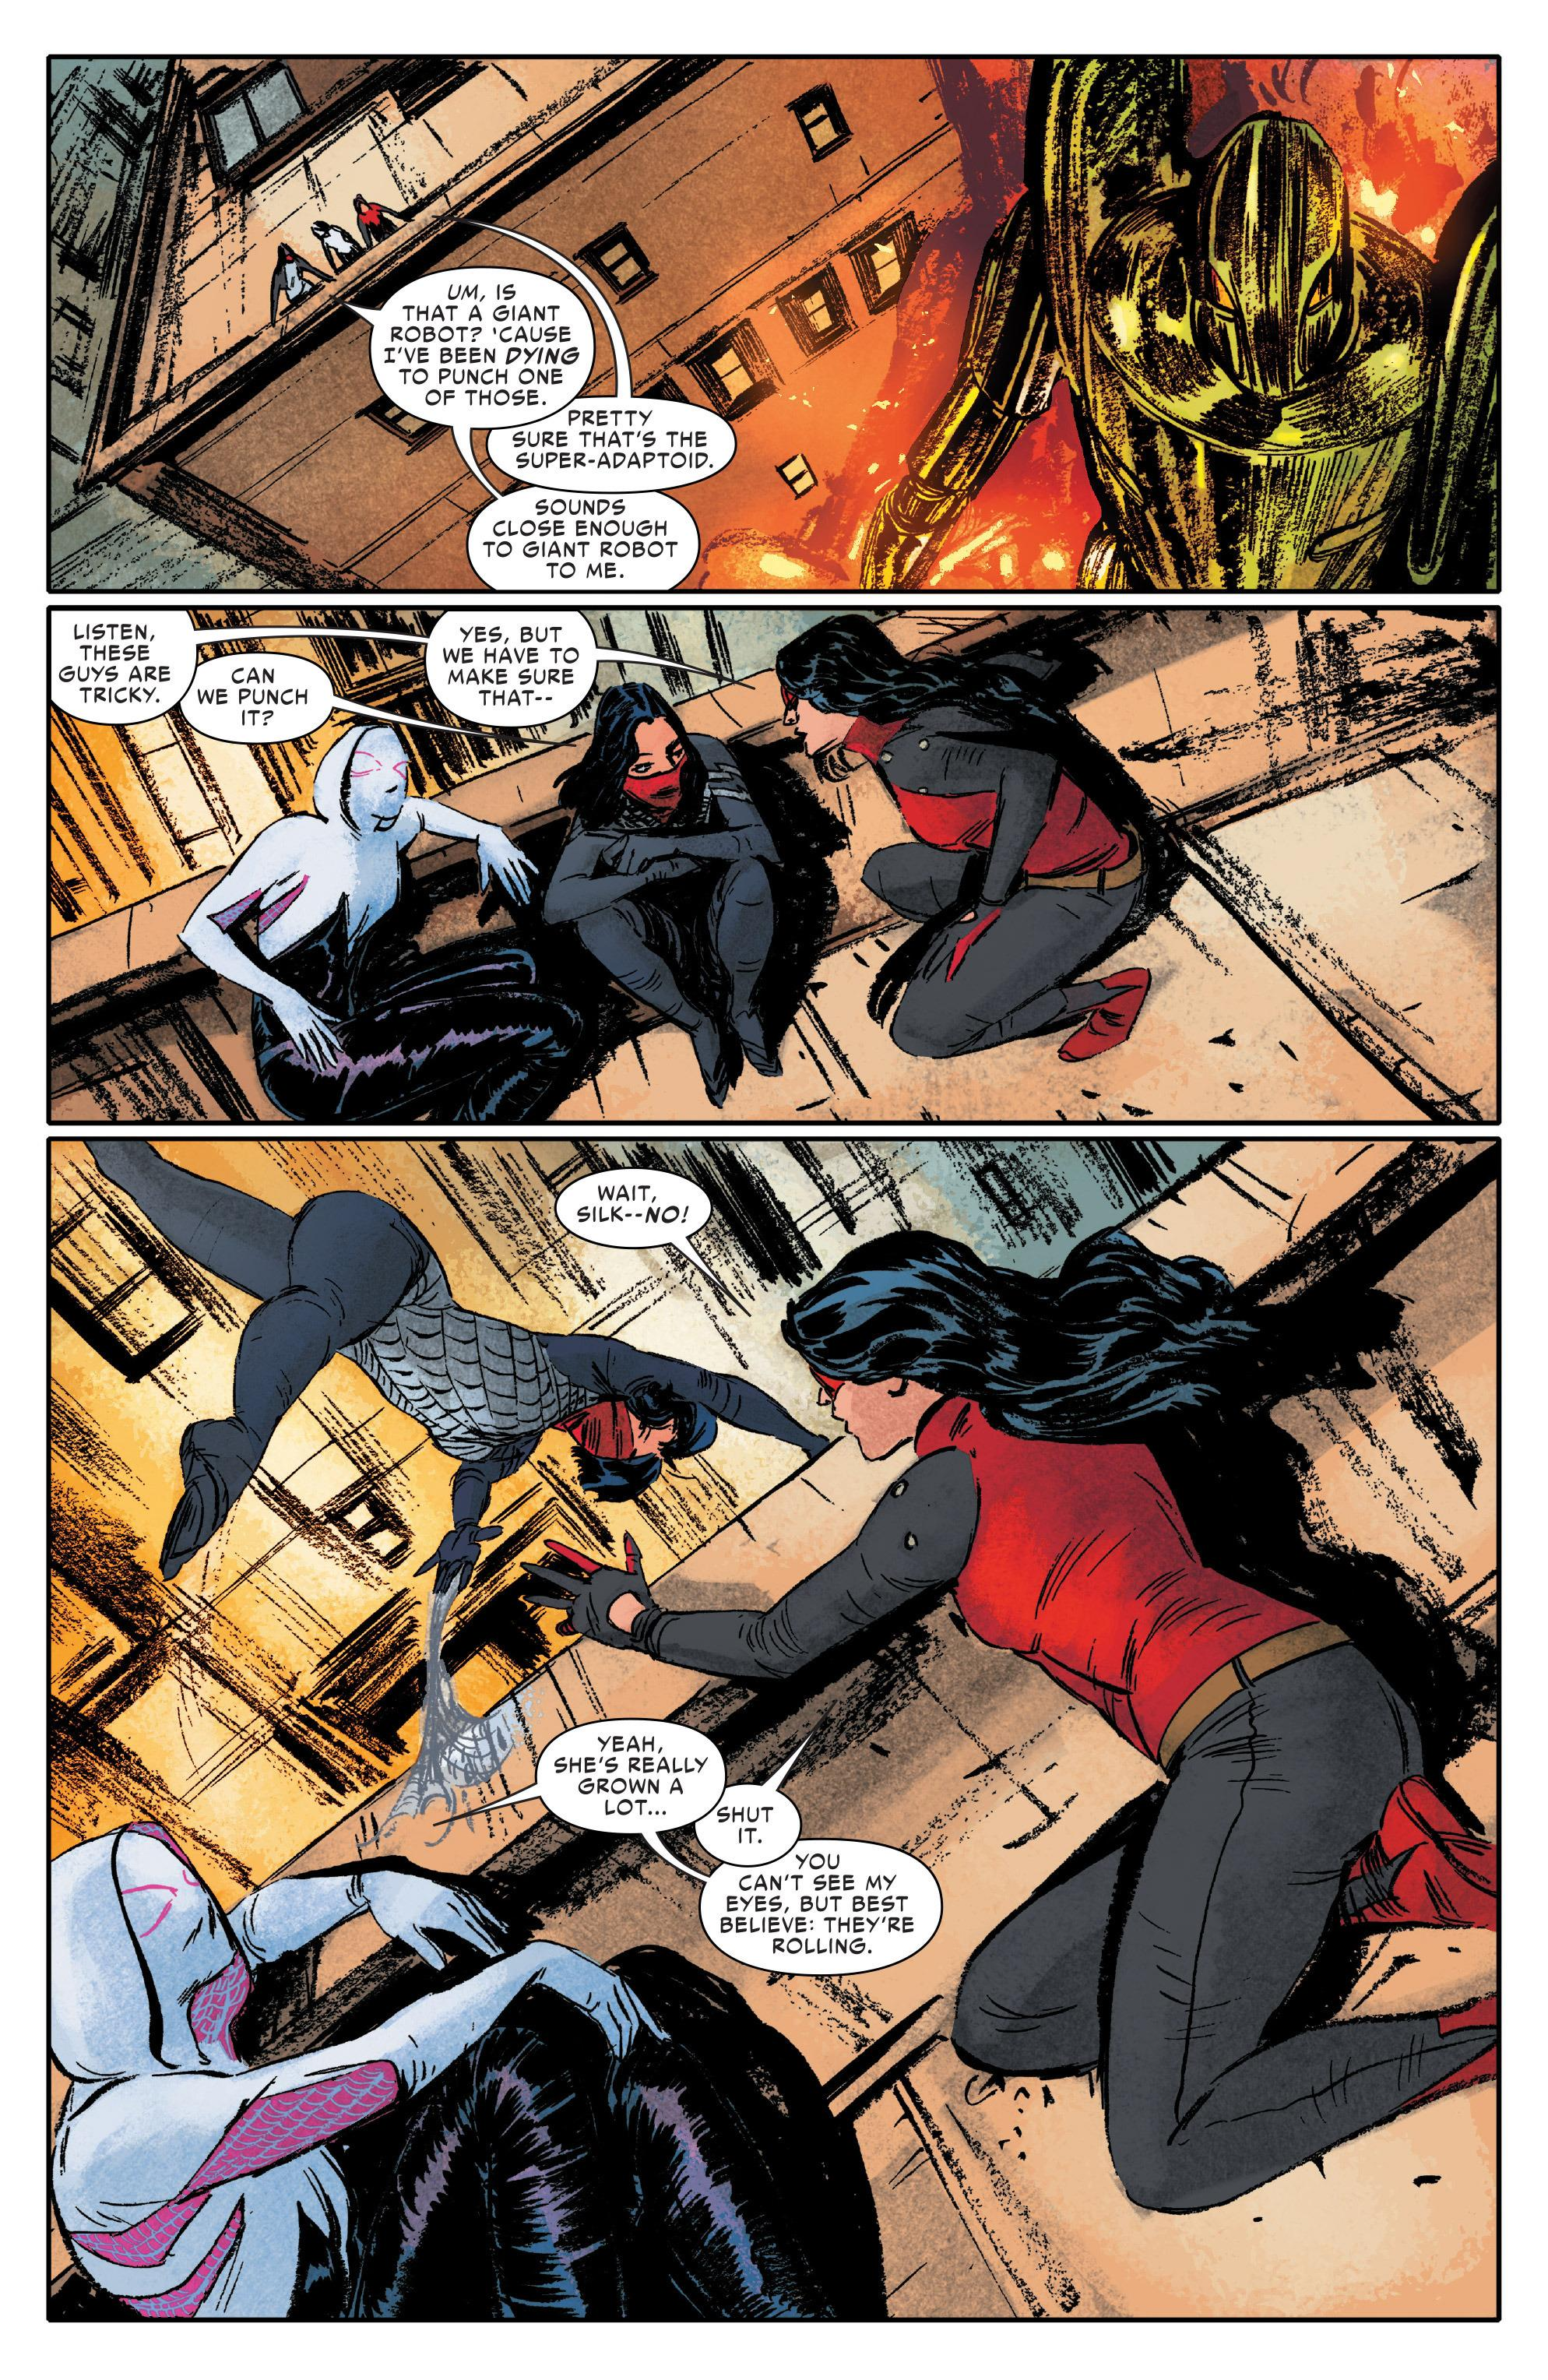 Spider-Women graphic novel review